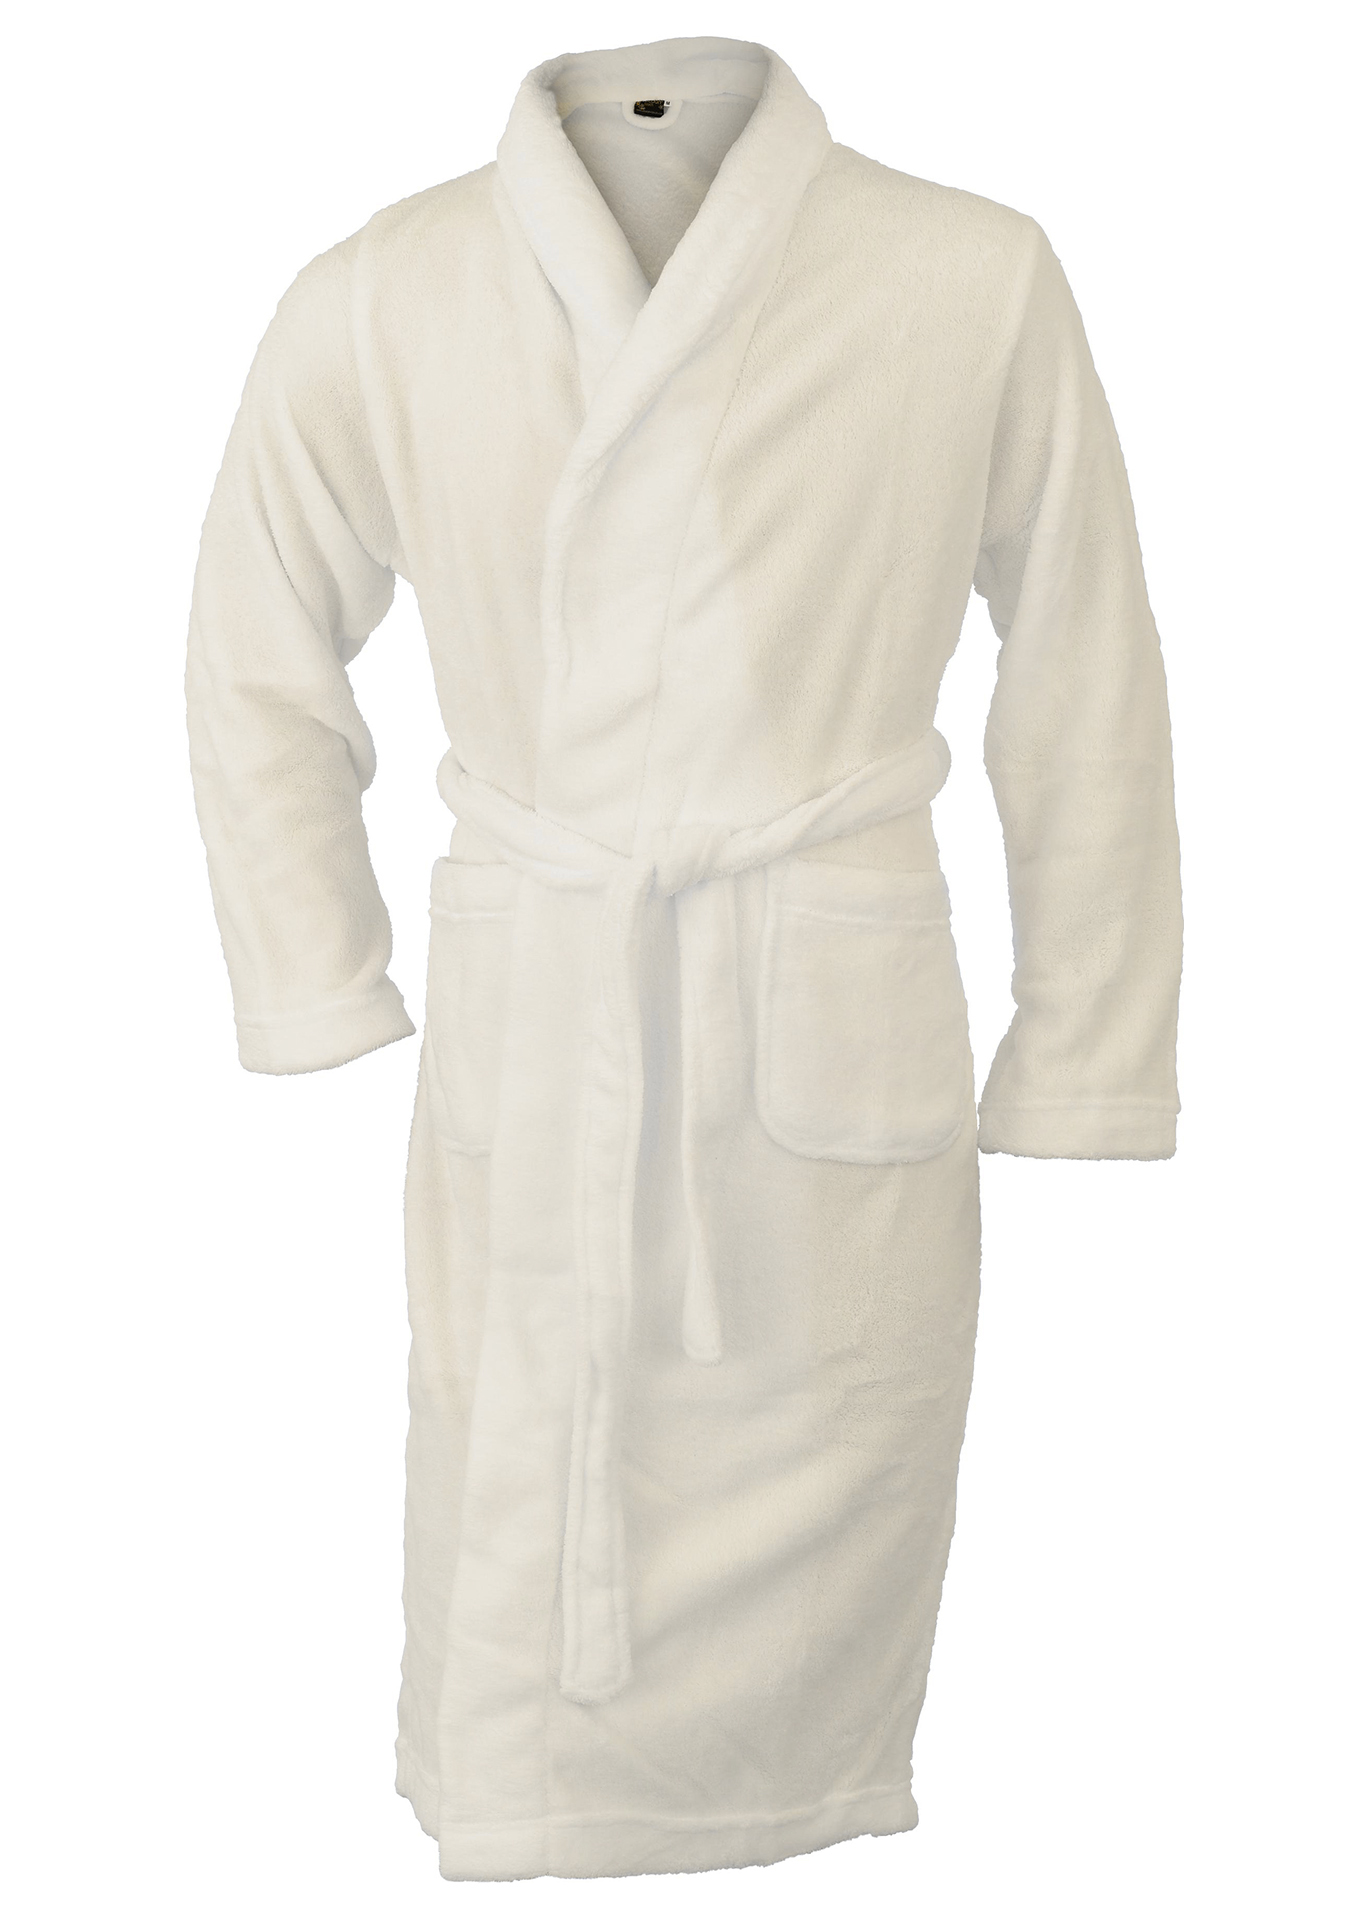 Bath Robes Comfort cream light